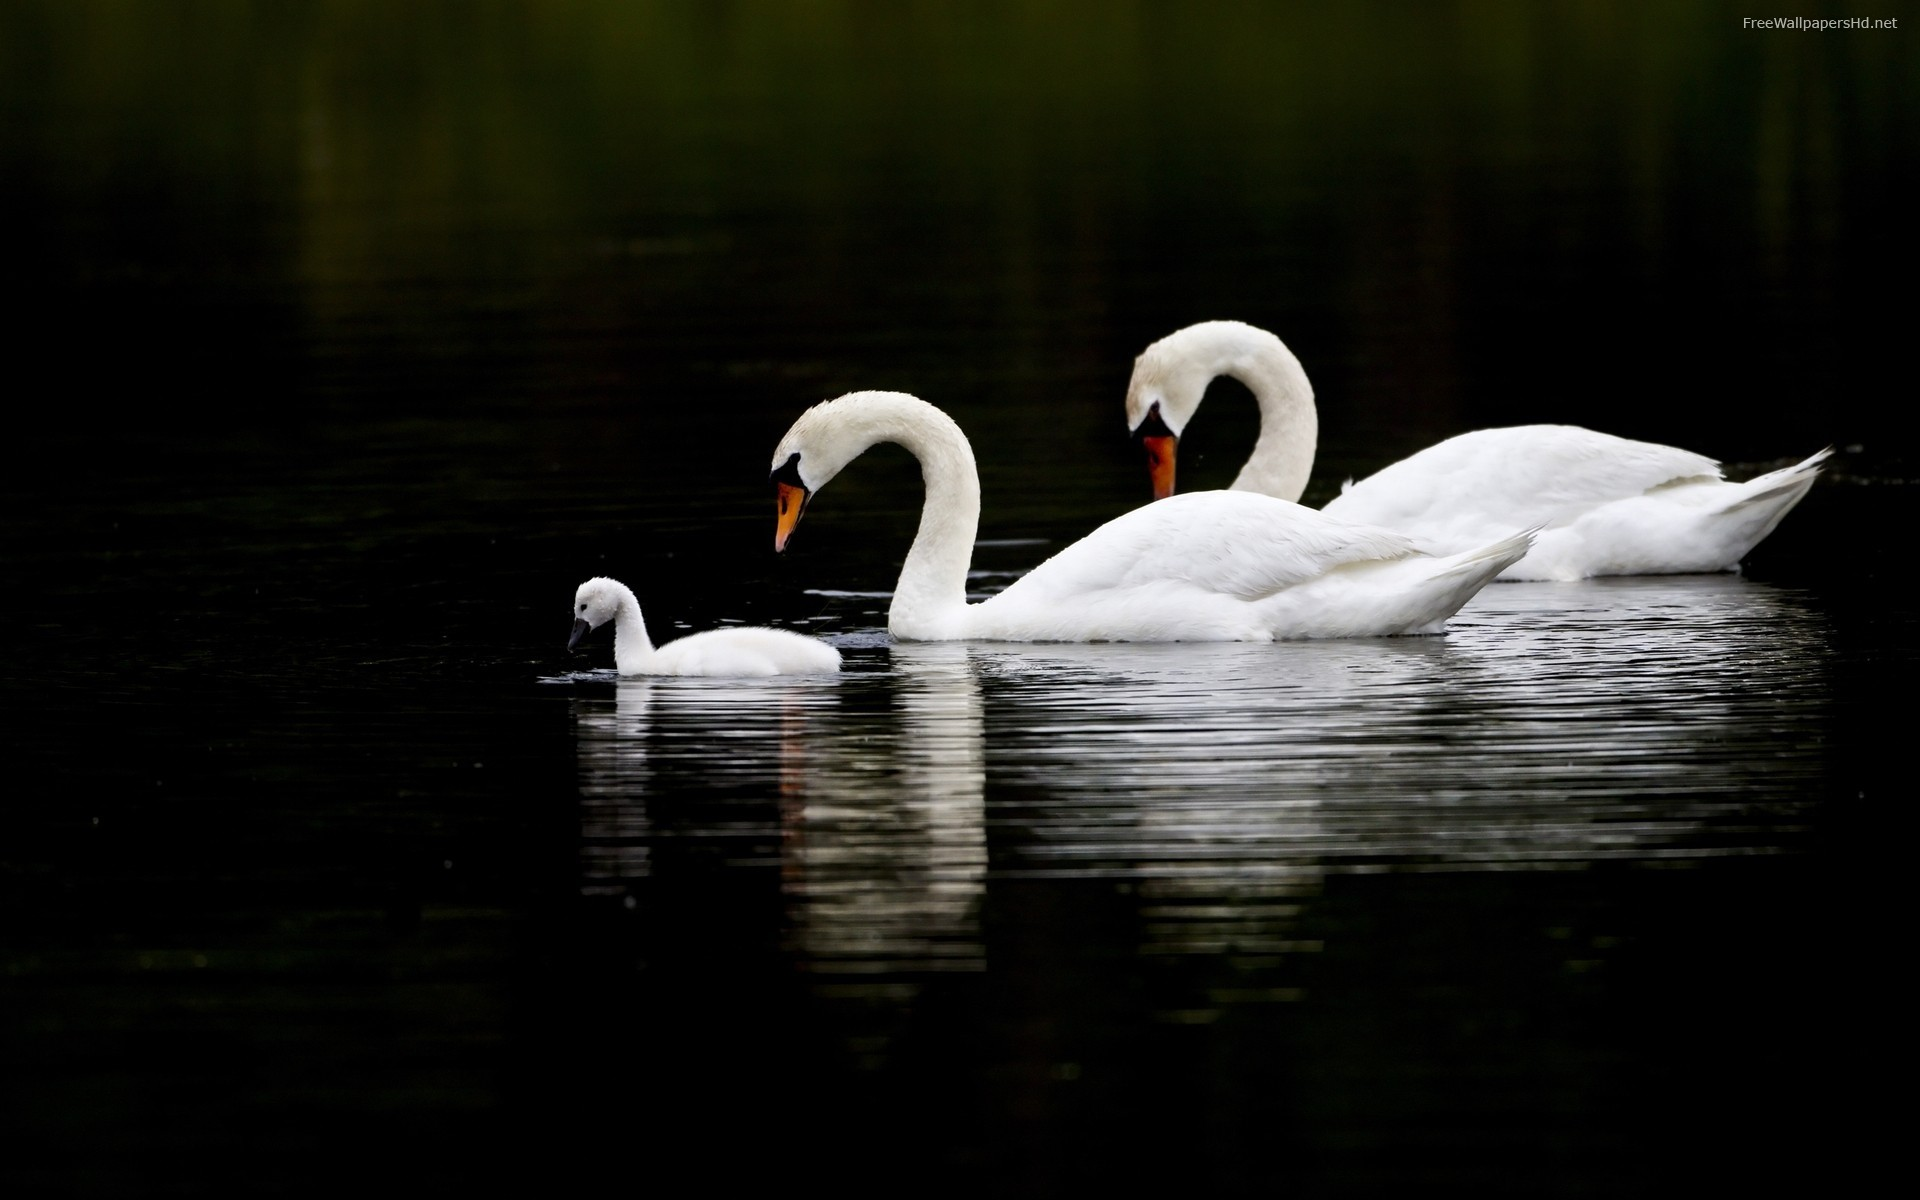 Related wallpapers from Baby Swan and Baby Duck